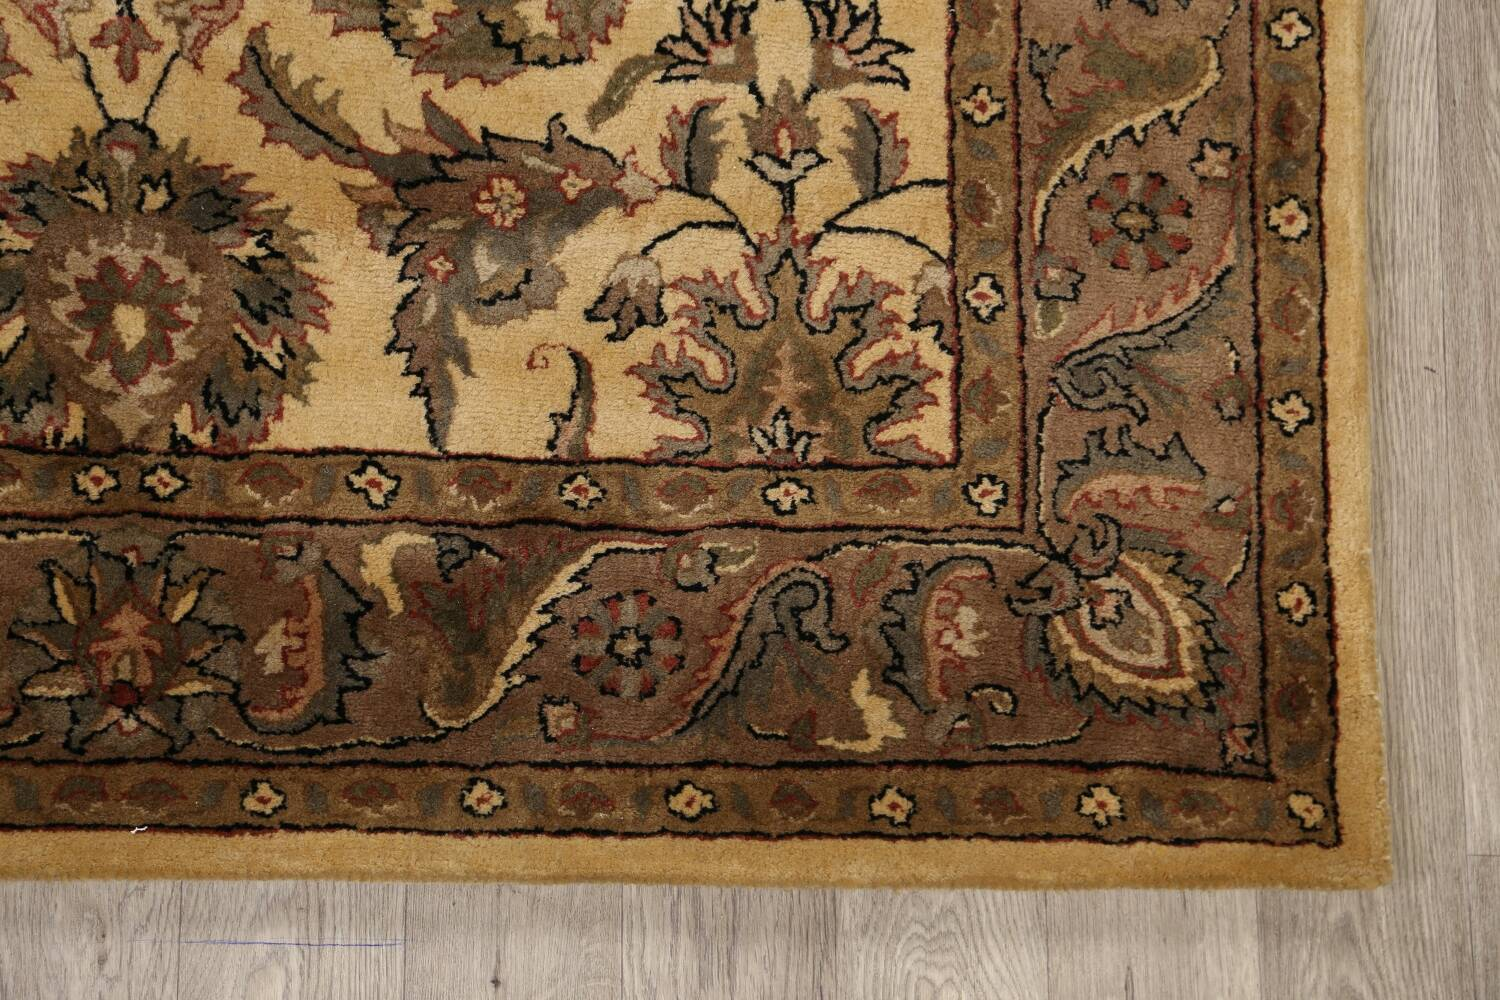 All-Over Floral Agra Oriental Area Rug 6x9 image 5